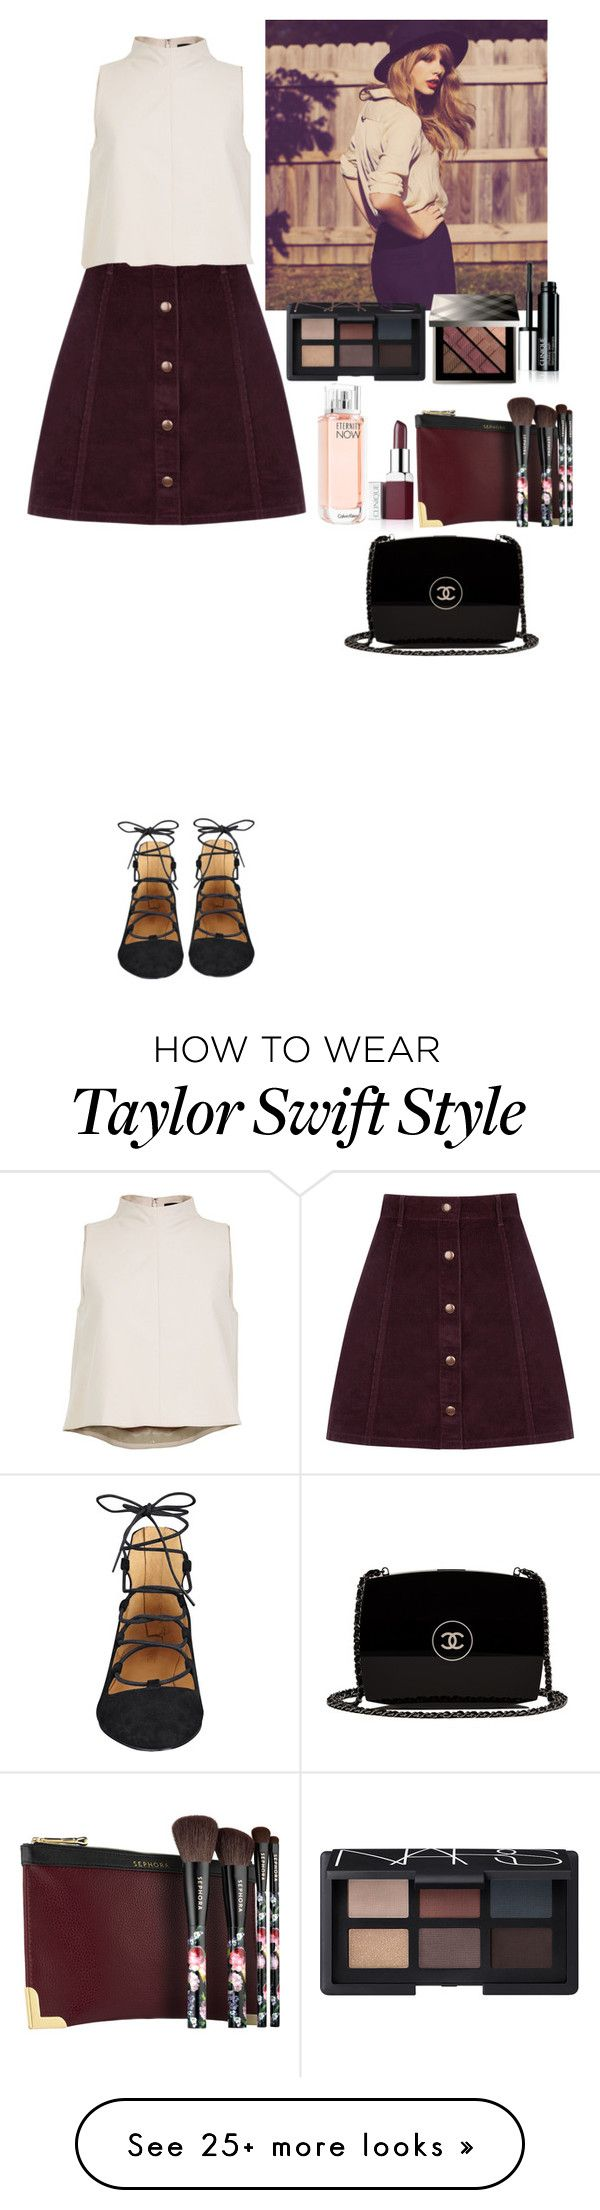 """""""Outfit"""" by eliza-redkina on Polyvore featuring moda, Oasis, TIBI, Nine West, Sephora Collection, Burberry, Clinique, NARS Cosmetics, Calvin Klein e Chanel"""